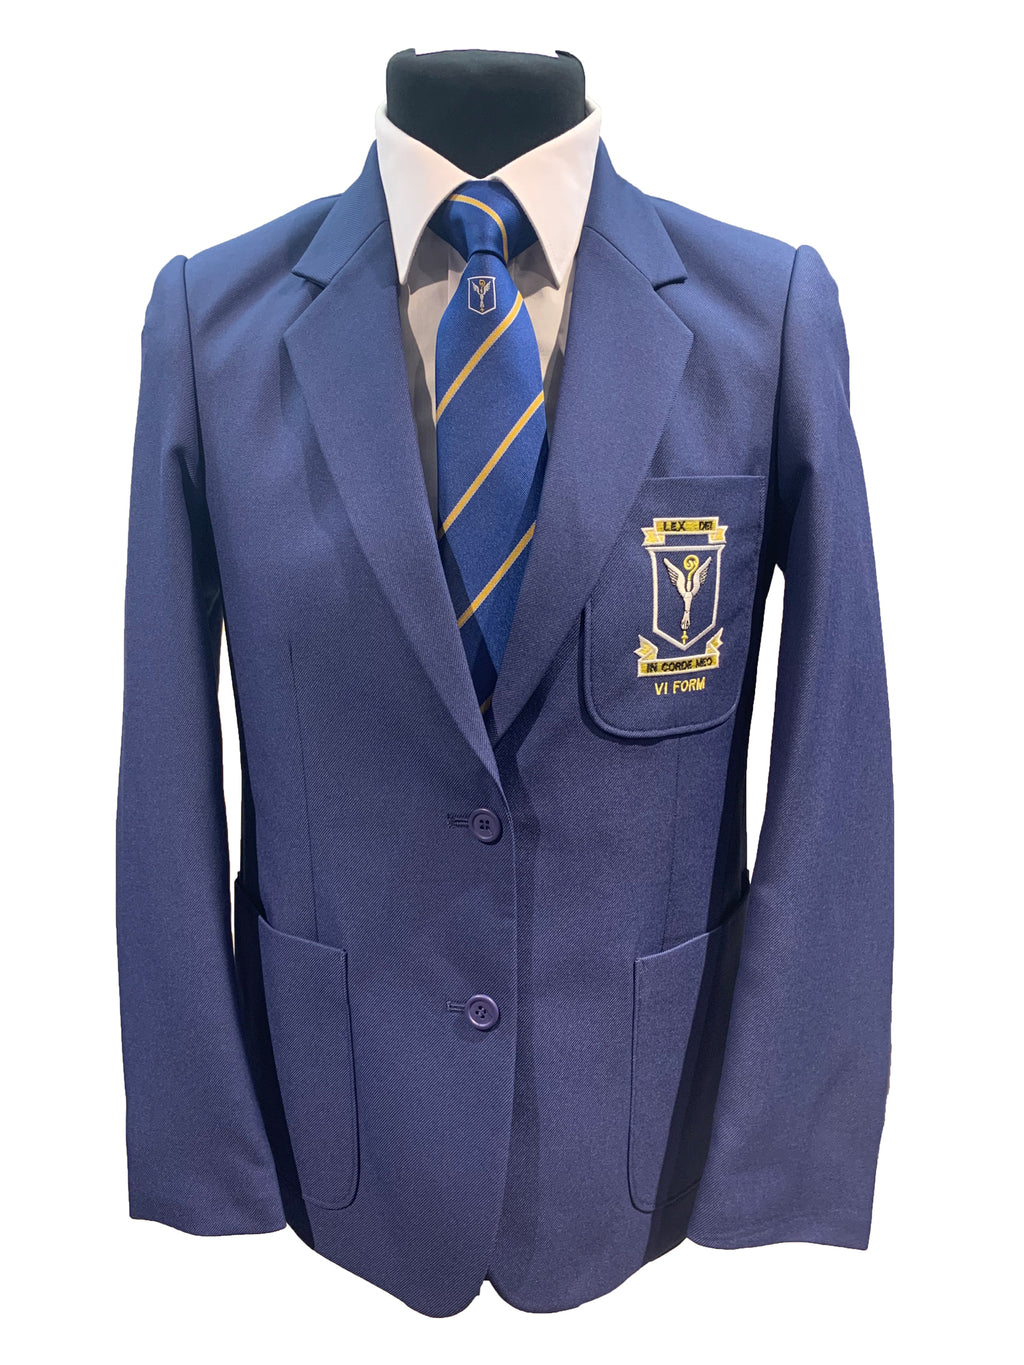 st columbanus uniform